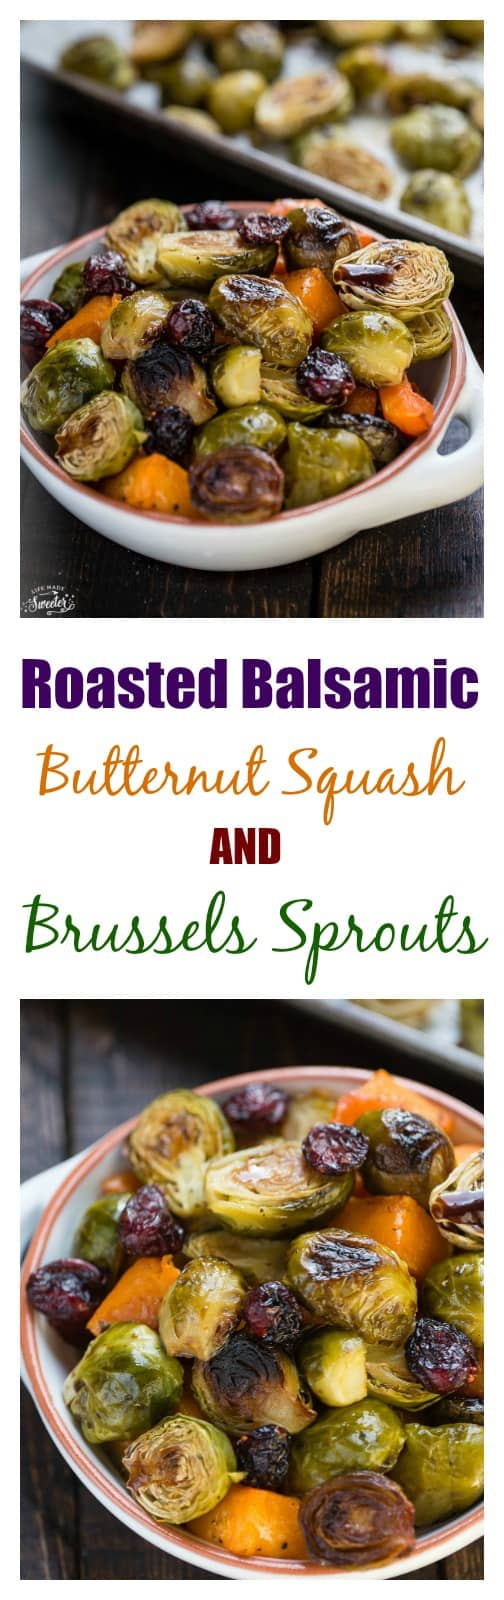 Balsamic Roasted Butternut Squash & Brussels Sprouts